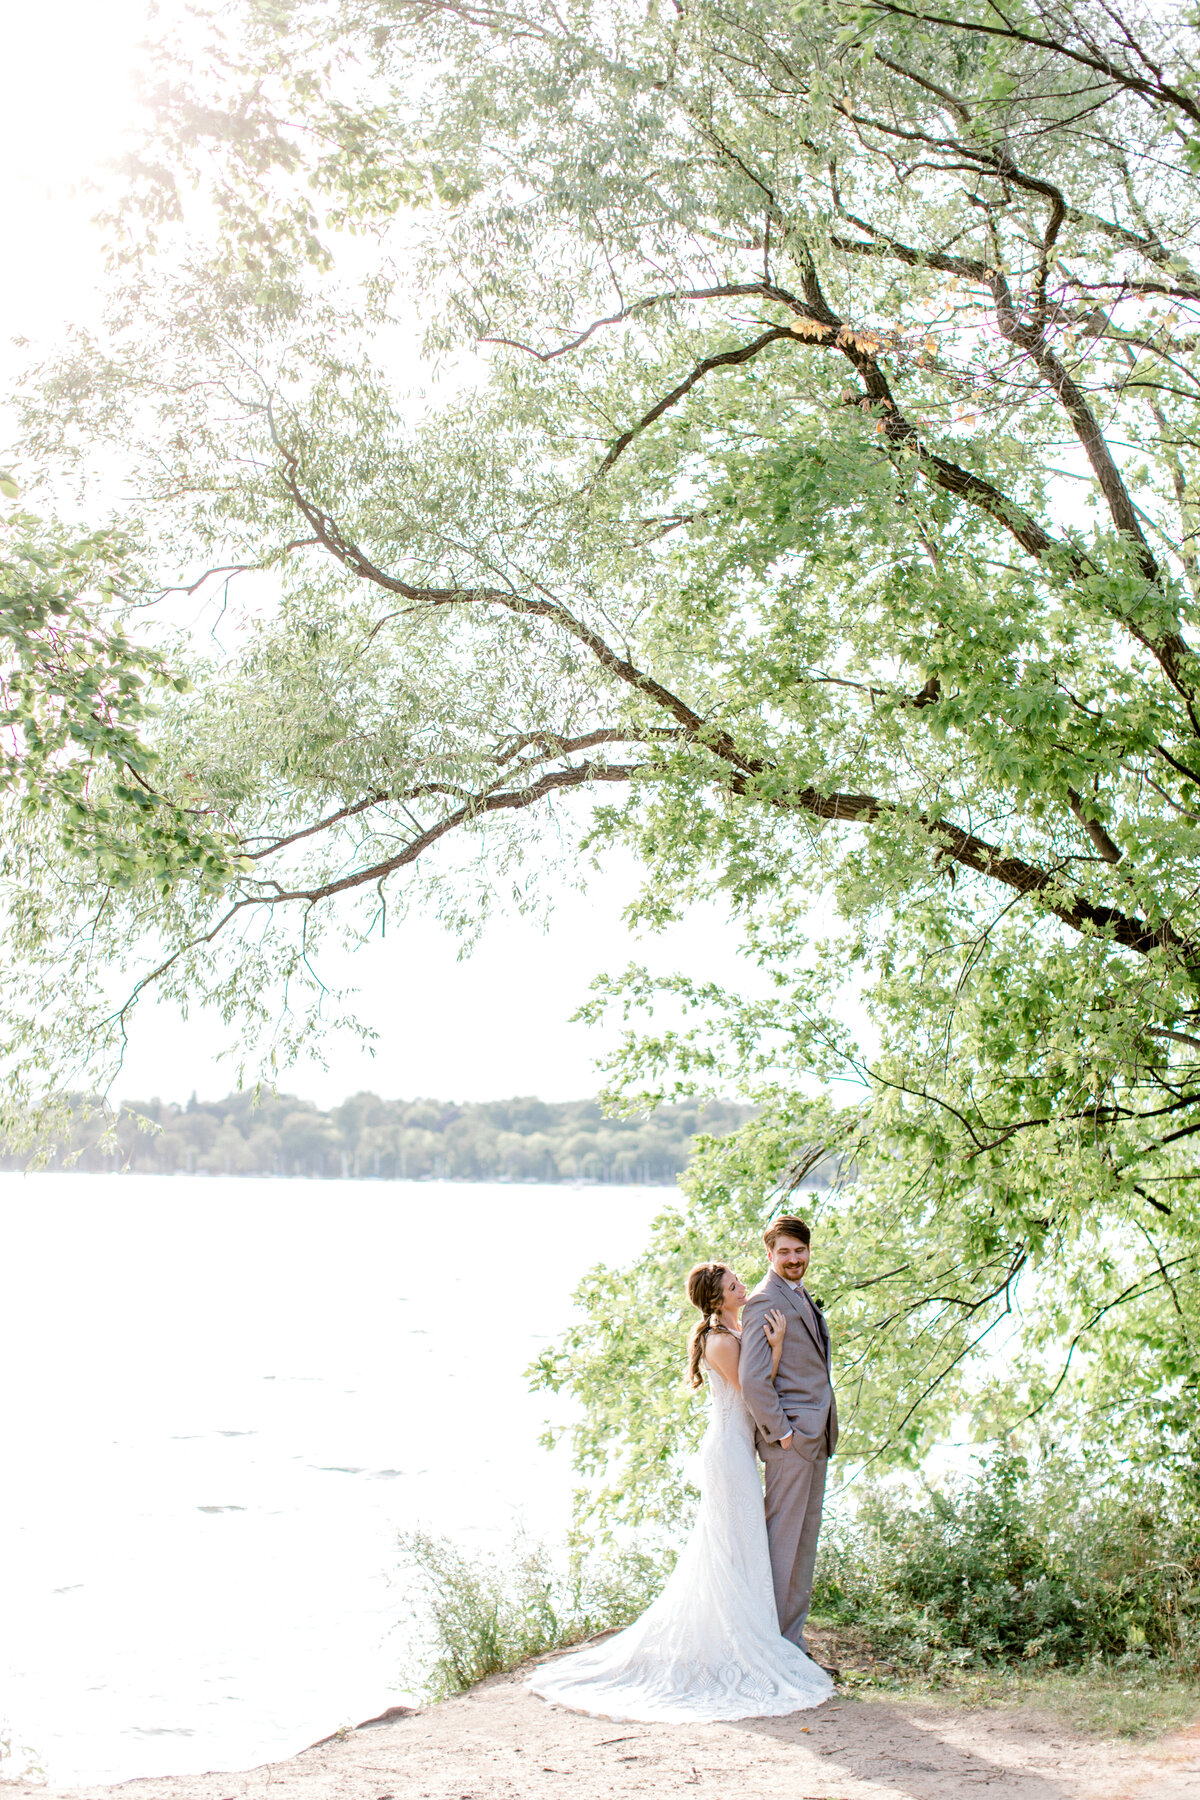 Lauren+Matt_Sneak_Peek-64